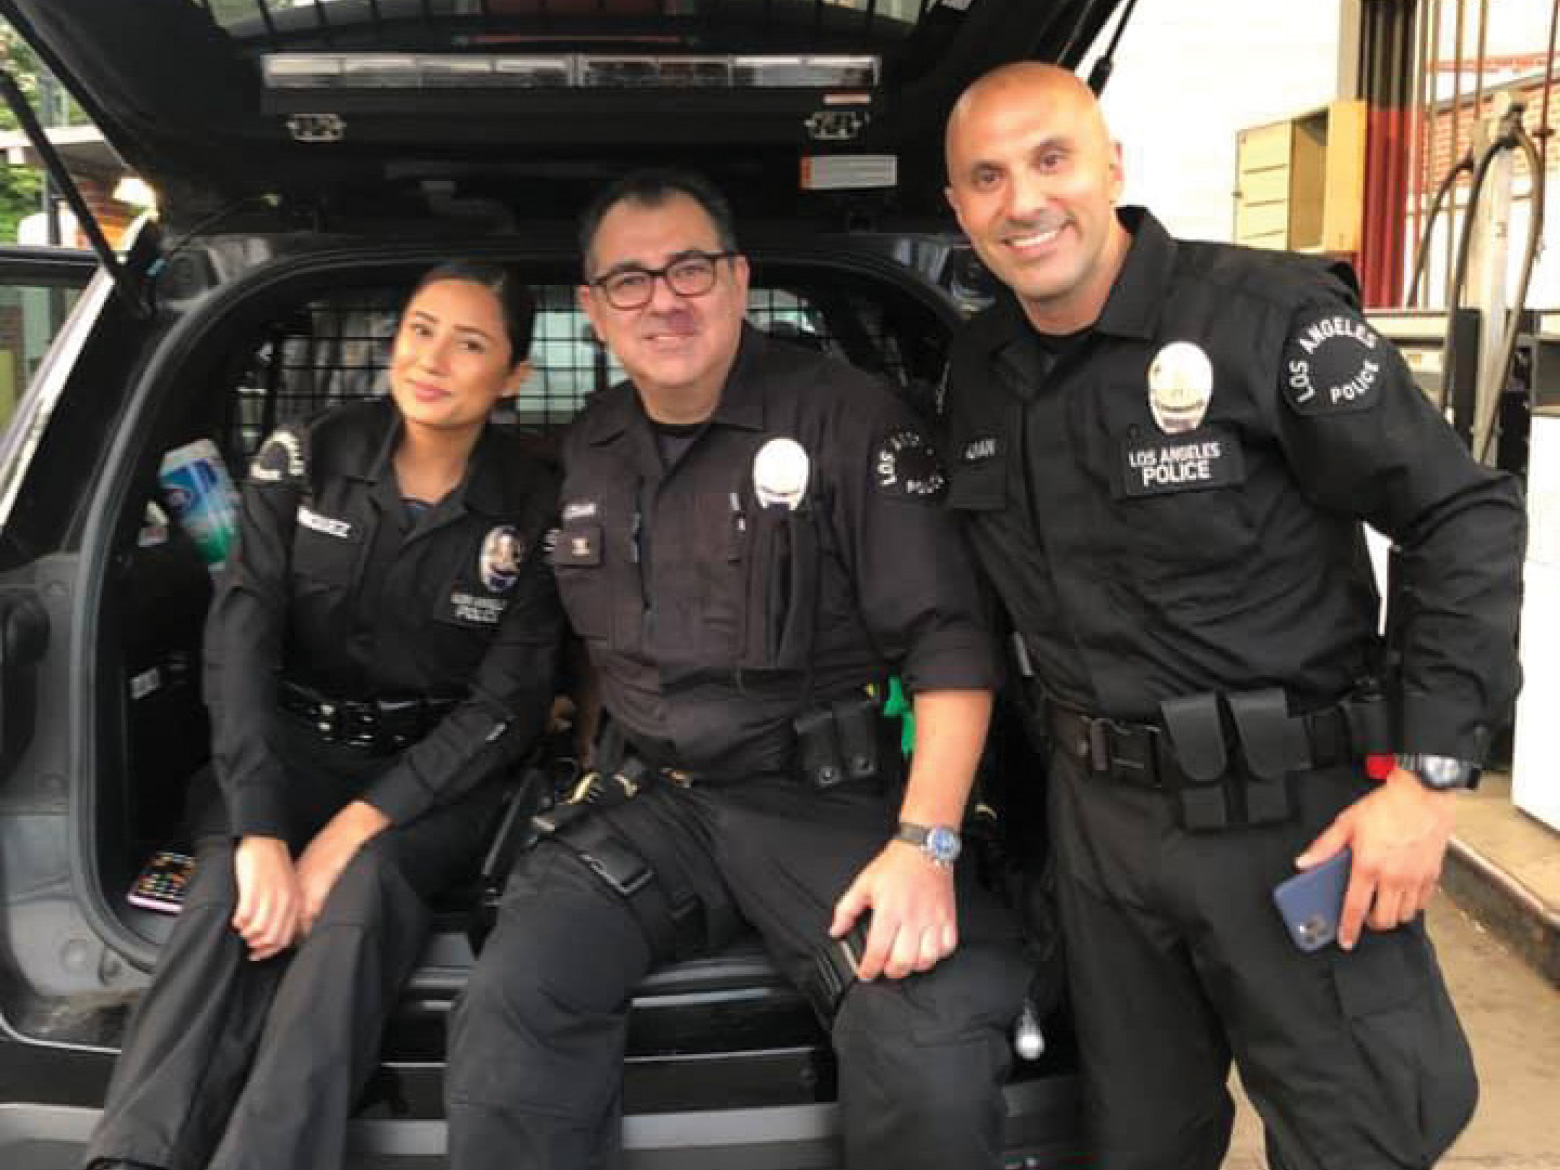 lapd-reserves-go-above-and-beyond-part-two-7